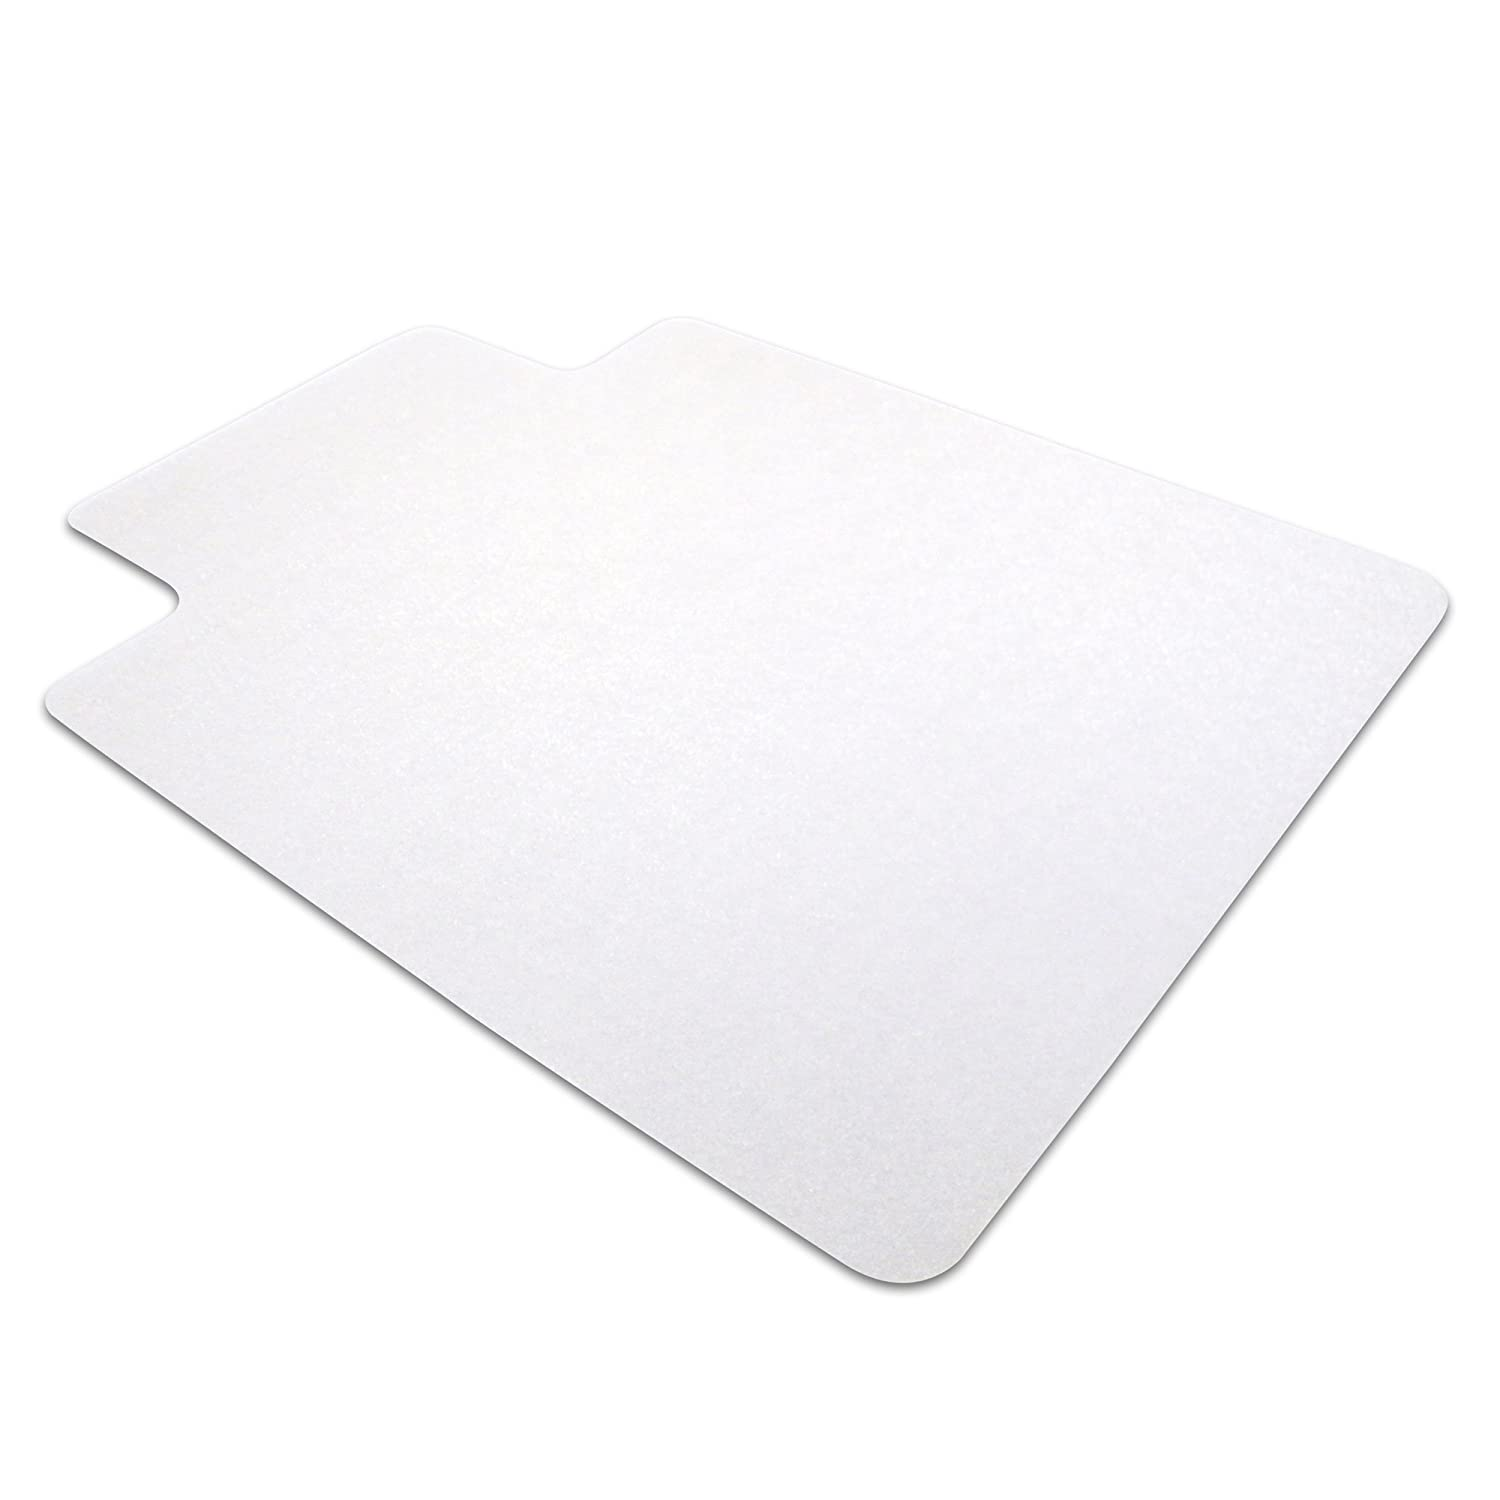 Amazon Floortex Advantagemat PVC Chair Mat for Hard Floors